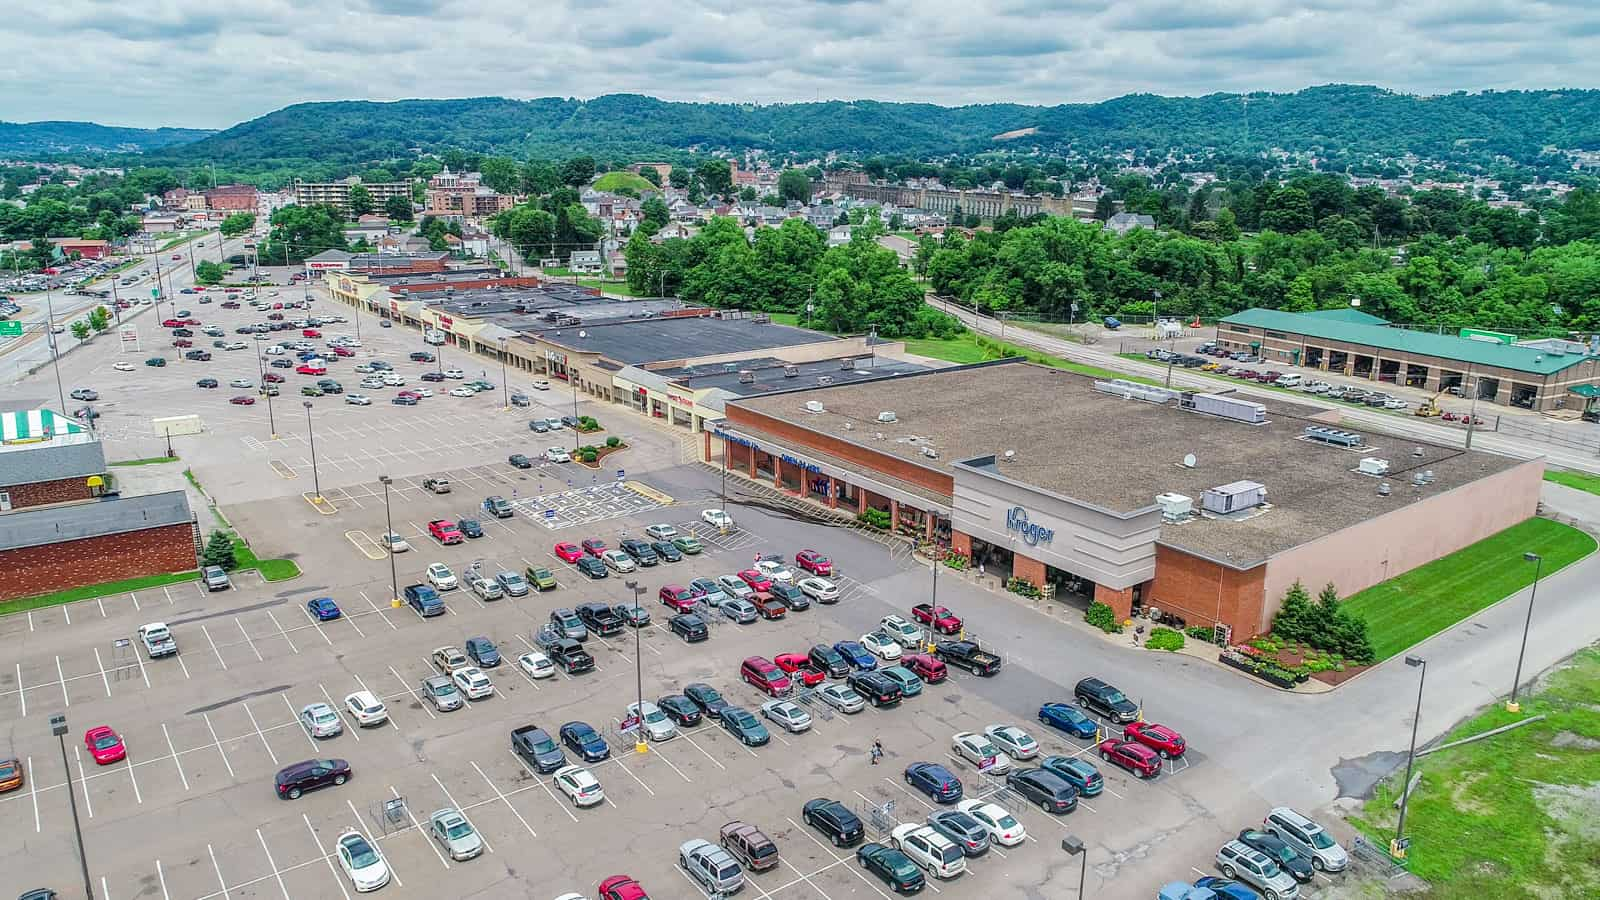 drone photo of shopping center in West Virginia